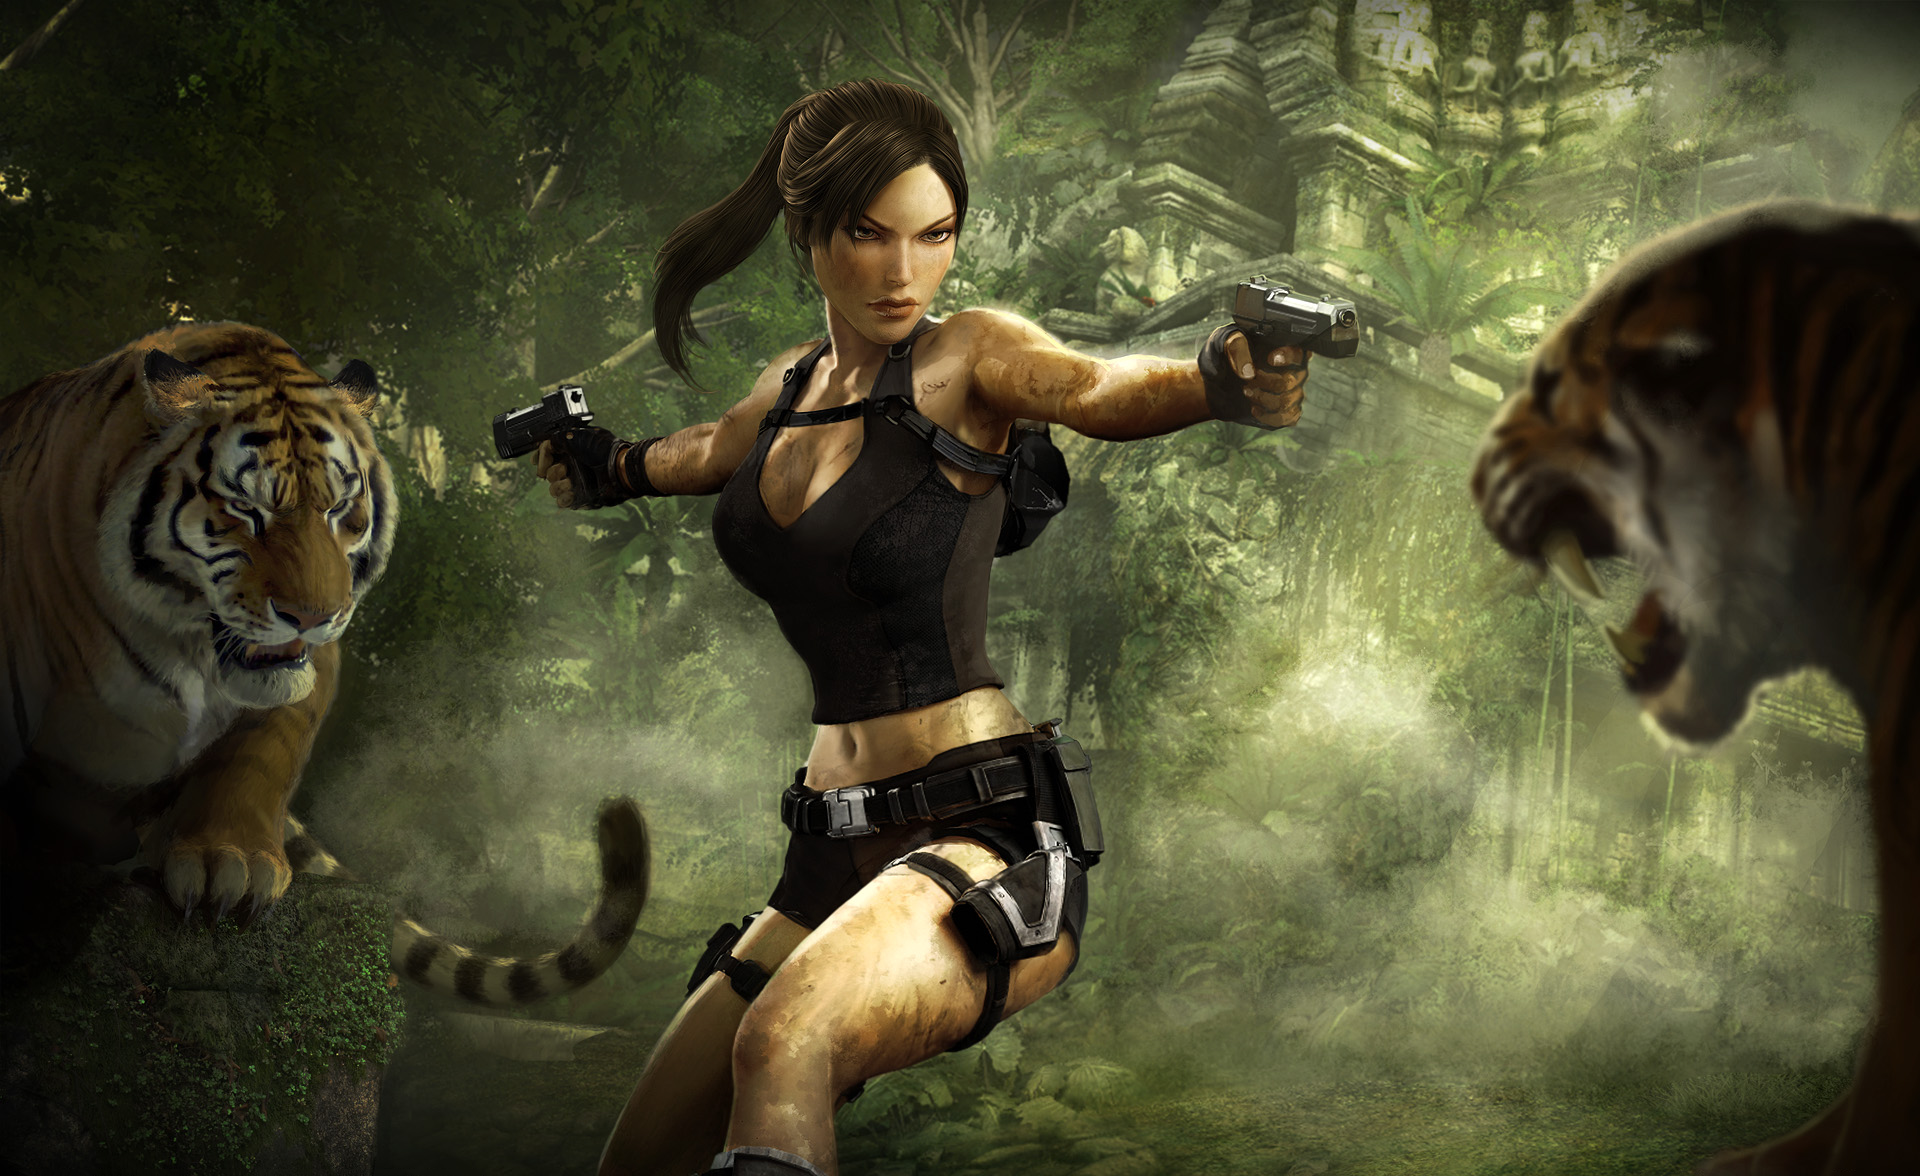 tomb-raider-underworld-game-hd-wallpaperscreen-hd-wallpaper-5619